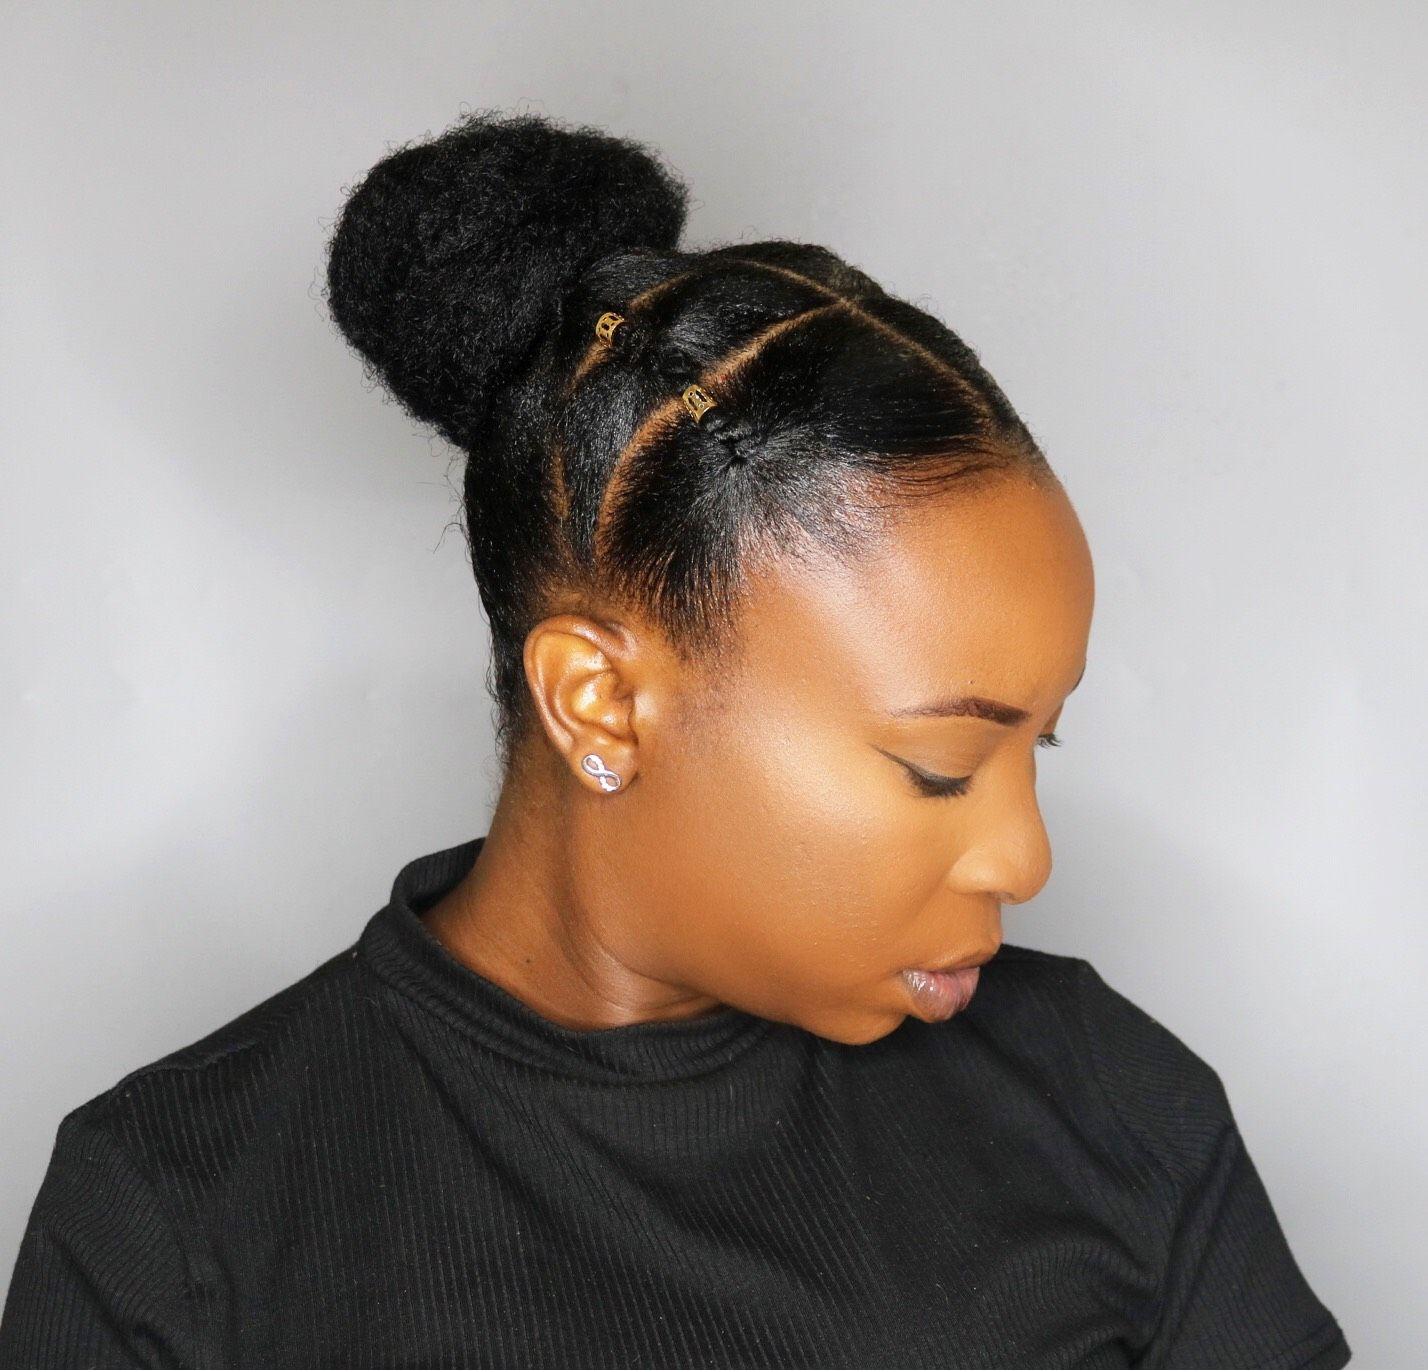 African Threading Updo On Short Hair Video Https Blackhairinformation Com Video Gallery Africa Natural Hair Styles Short Hair Updo Short Hair Styles Easy